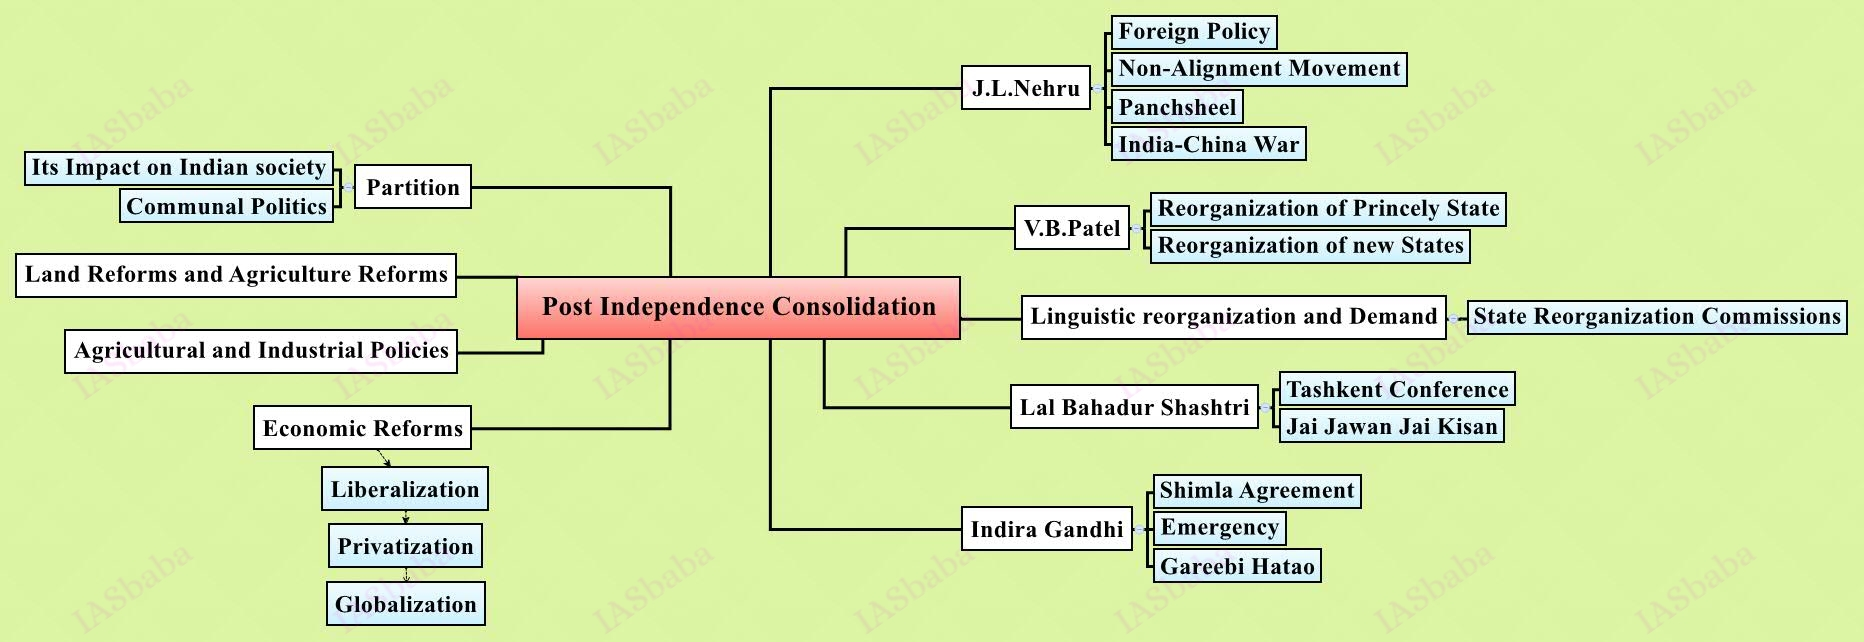 Post Independence Consolidation